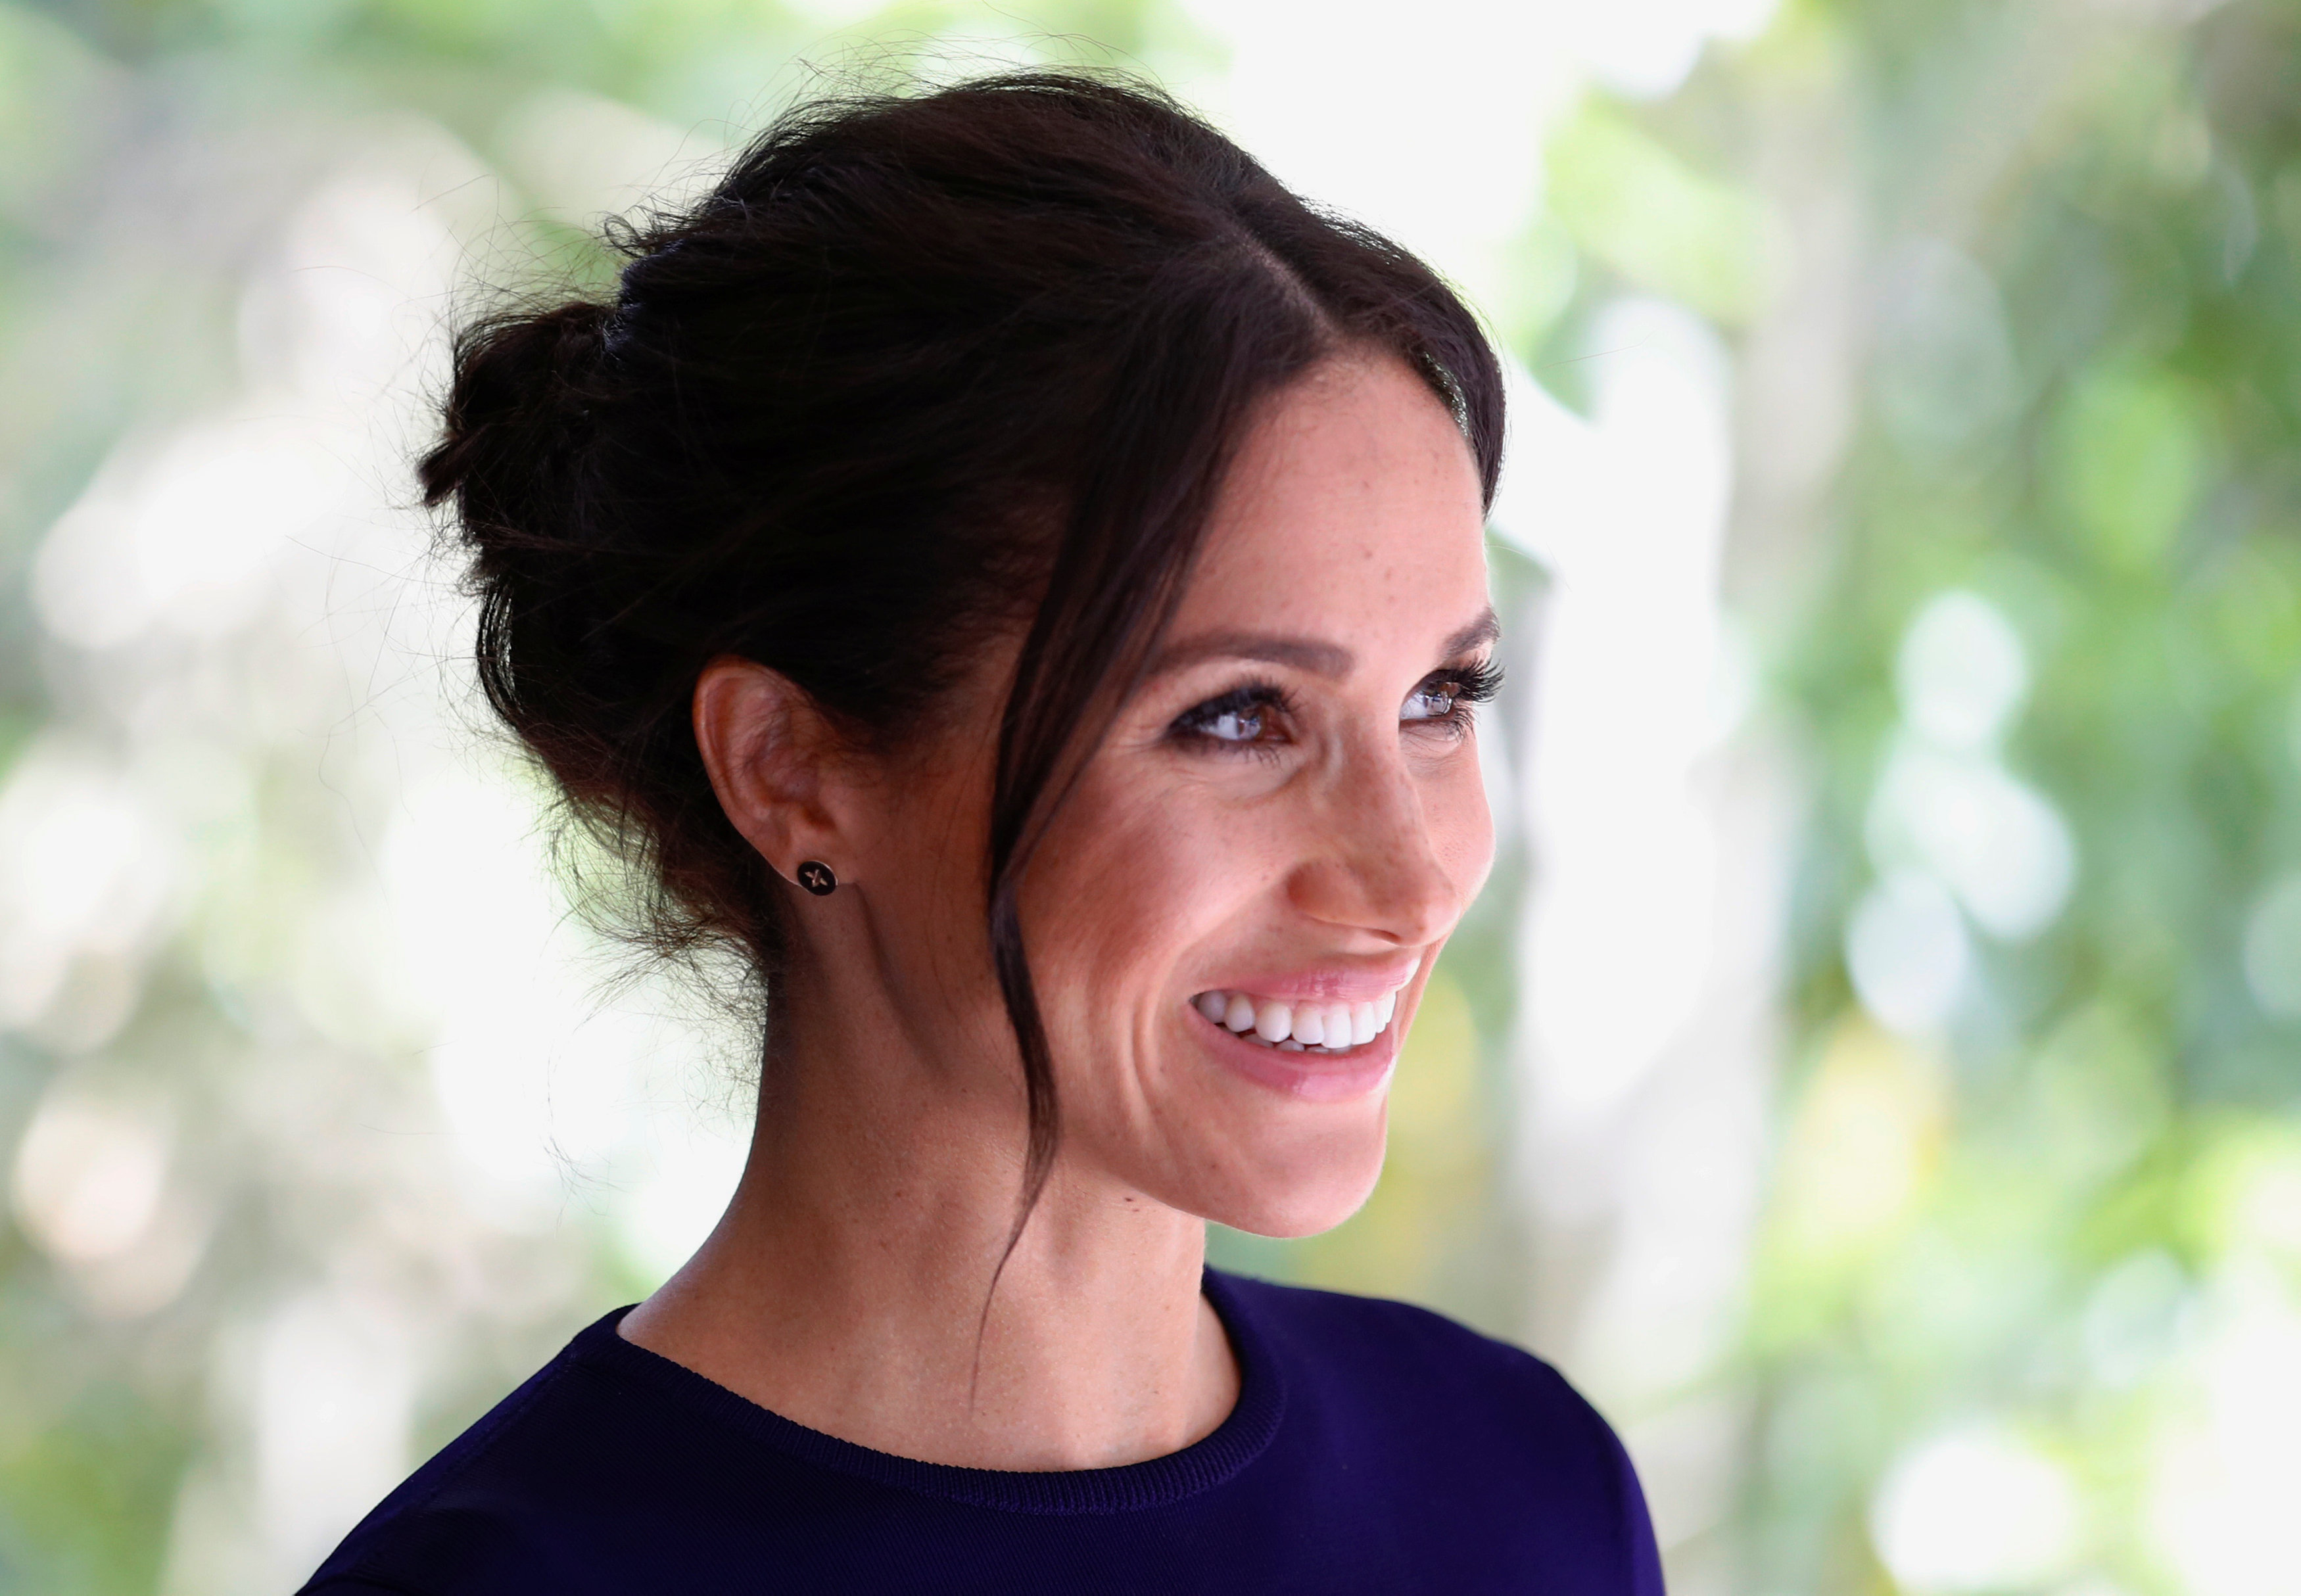 Meghan, Duchess of Sussex visit the National Kiwi Hatchery at Rainbow Springs on October 31, 2018 in Rotorua, New Zealand. (Photo by Phil Noble - Pool/Getty Images)